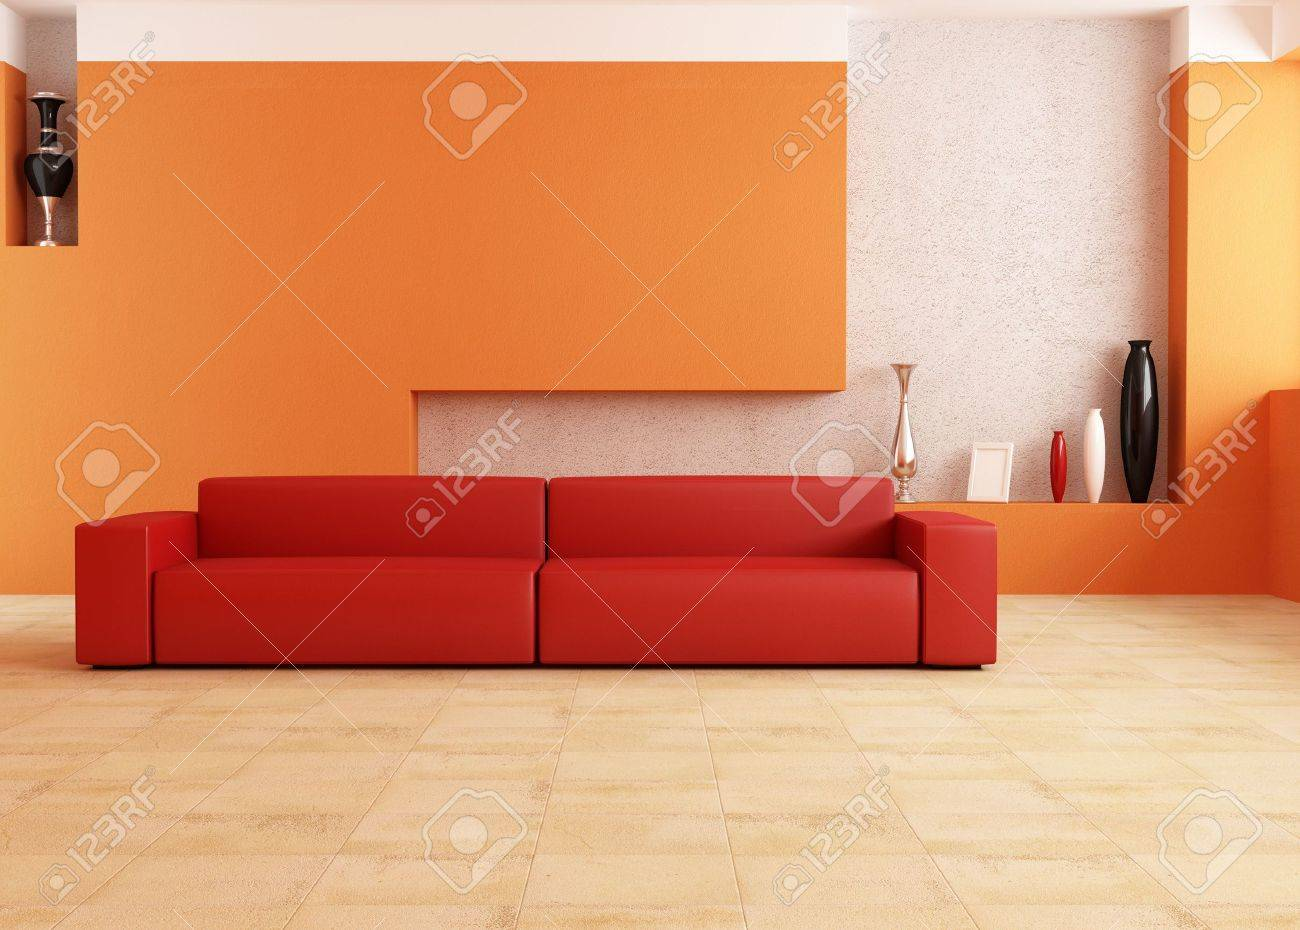 Modern Red Sofa In A Orange Living Room Stock Photo Picture And